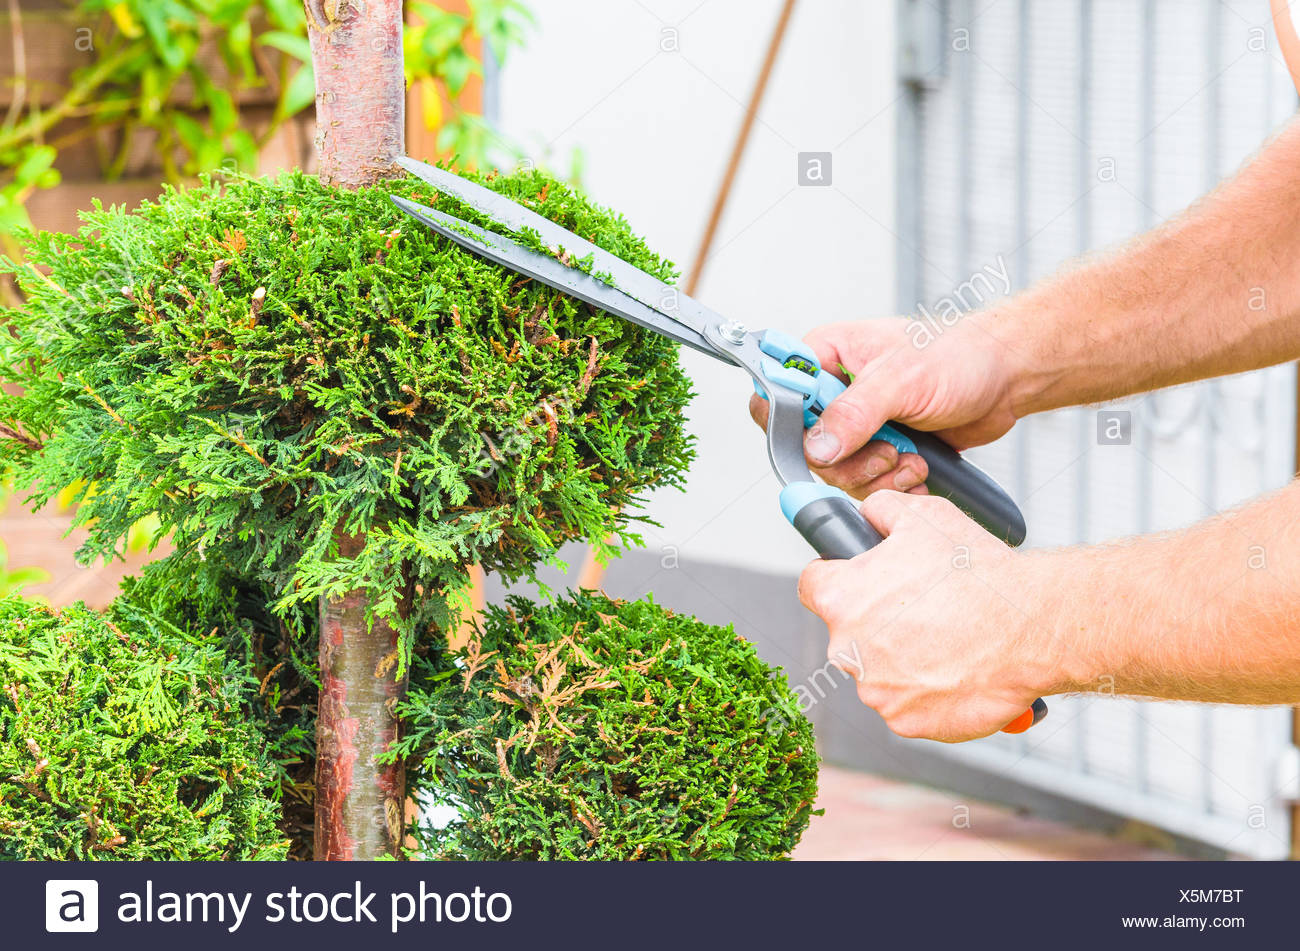 Hands, hedge trimmer and tree - Stock Image